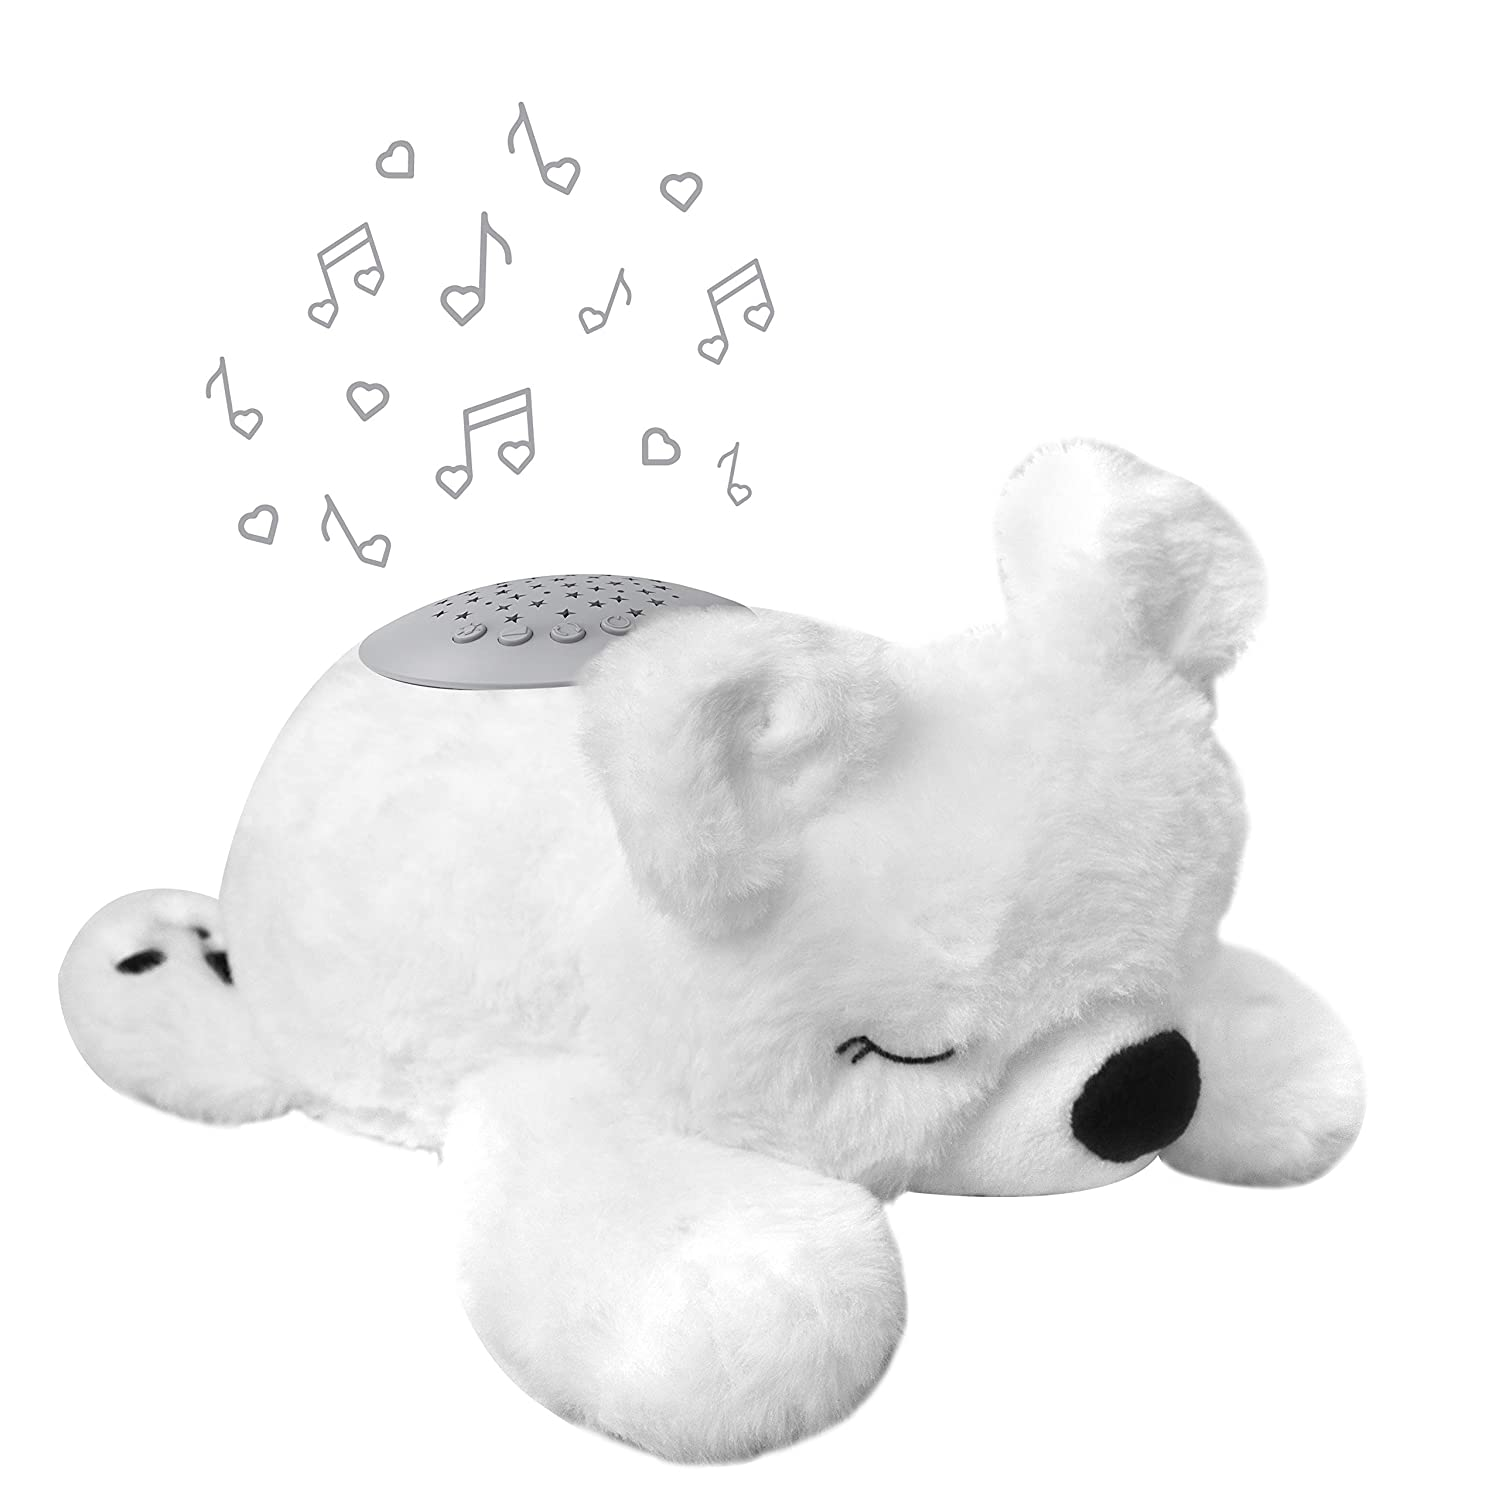 PureBaby Sound Sleepers Portable Sound Machine & Star Projector - Plush Sleep Aid for Baby and Toddlers with Soothing Night Light Display, 10 Lullabies, White Noise, and Heartbeat Sounds (Polar Bear)